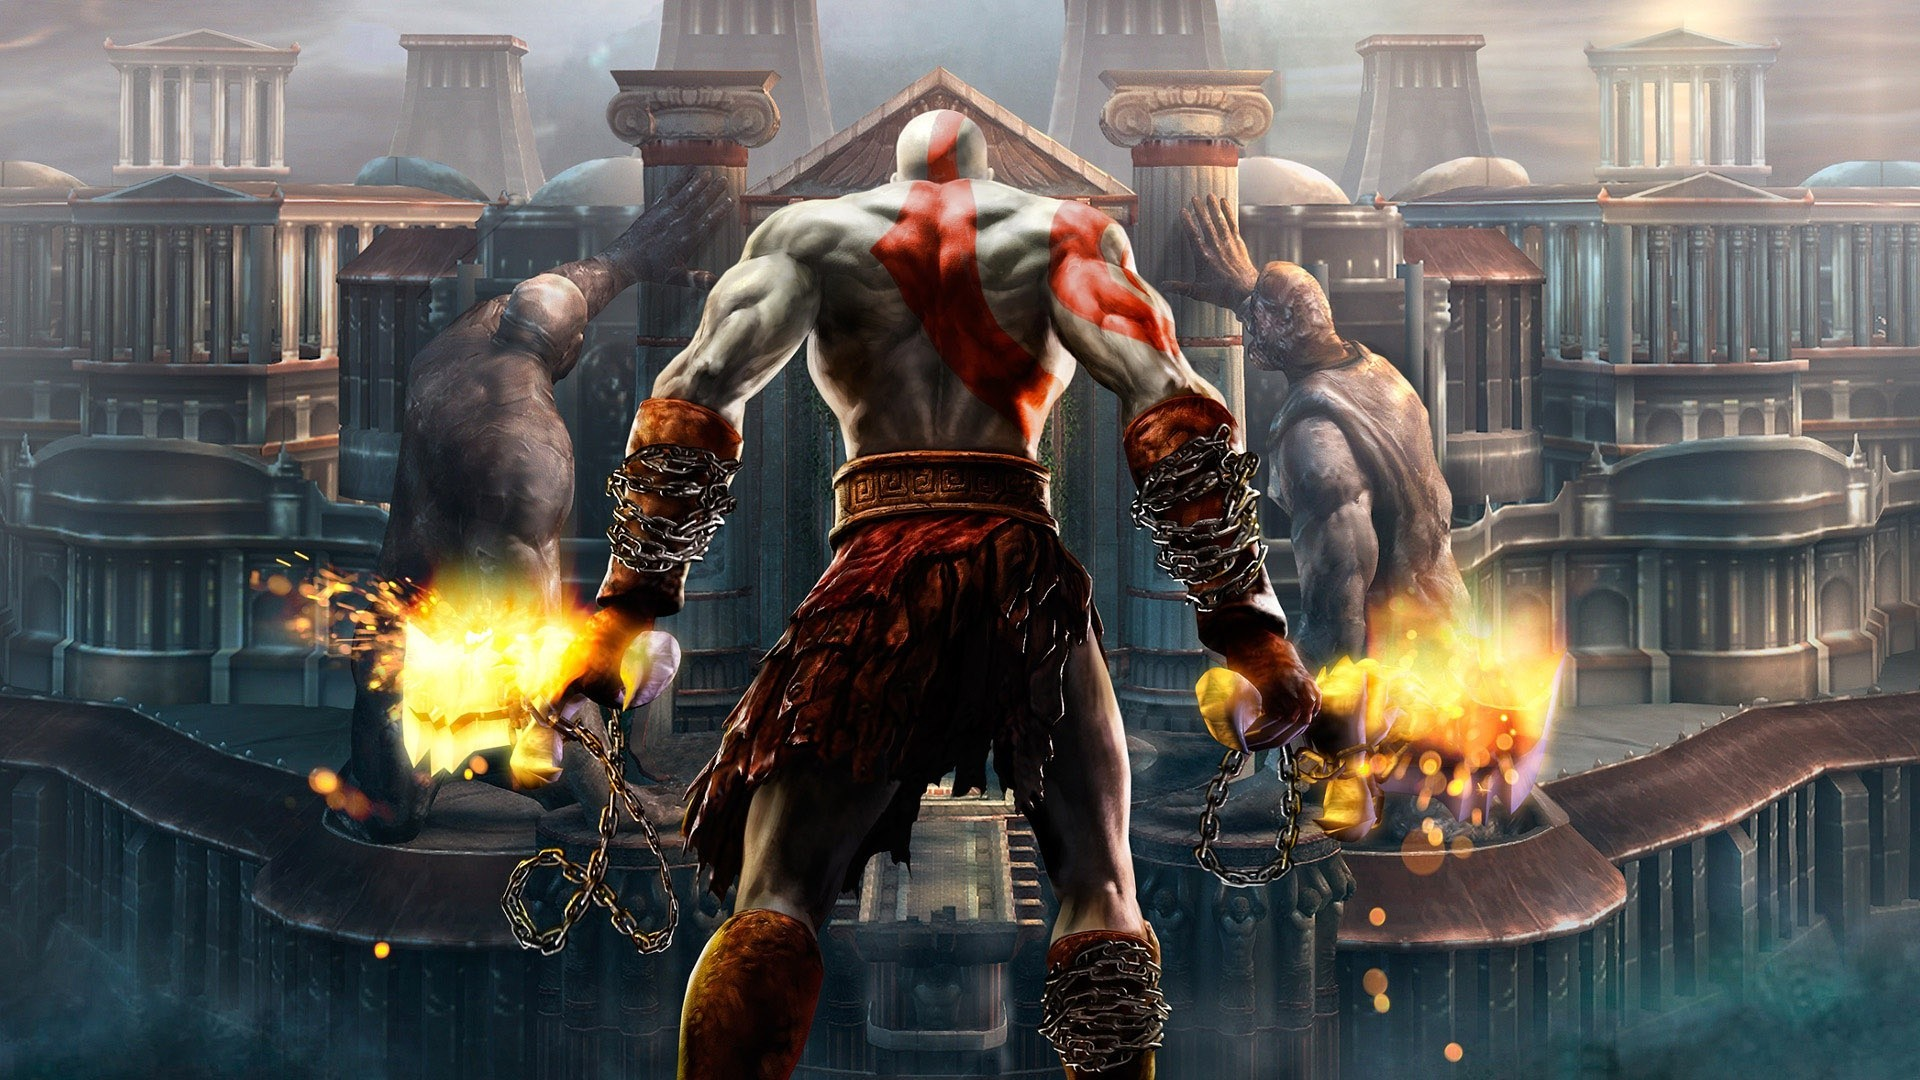 Kratos god of war wallpaper Wallpaper Wide HD 1920x1080